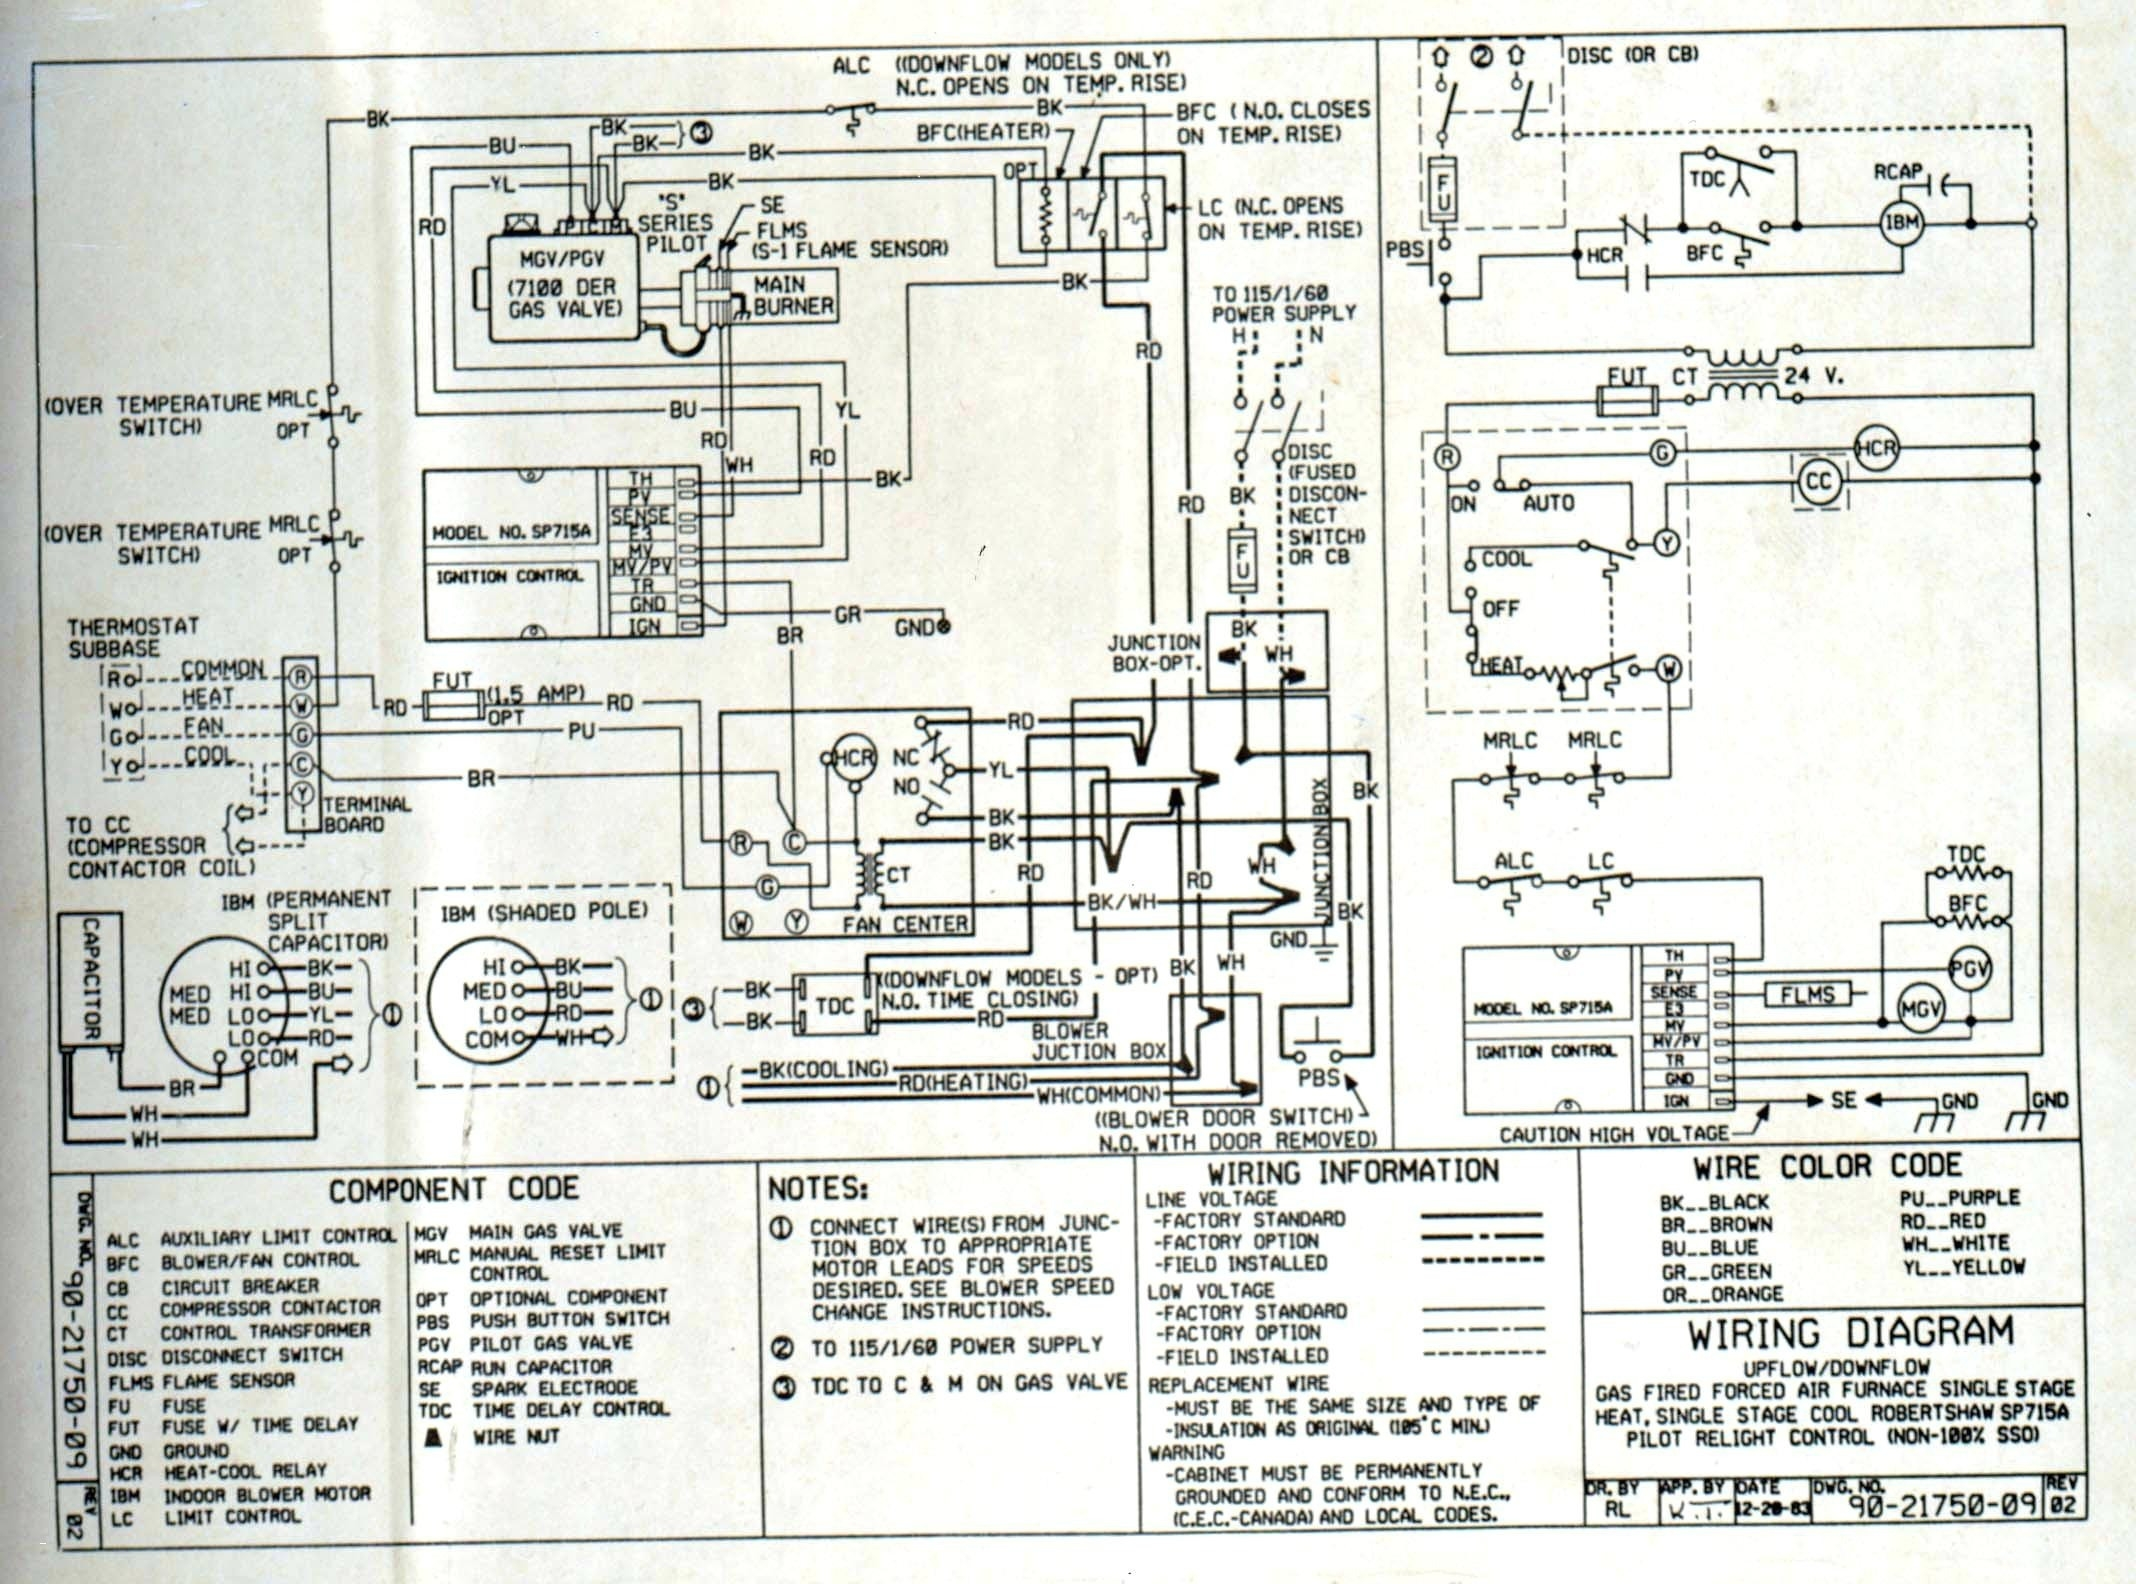 york electric furnace wiring diagram Collection-Wiring Diagram Electric Furnace Fresh Goodman Gas Furnace Wiring Diagram Download 11-a